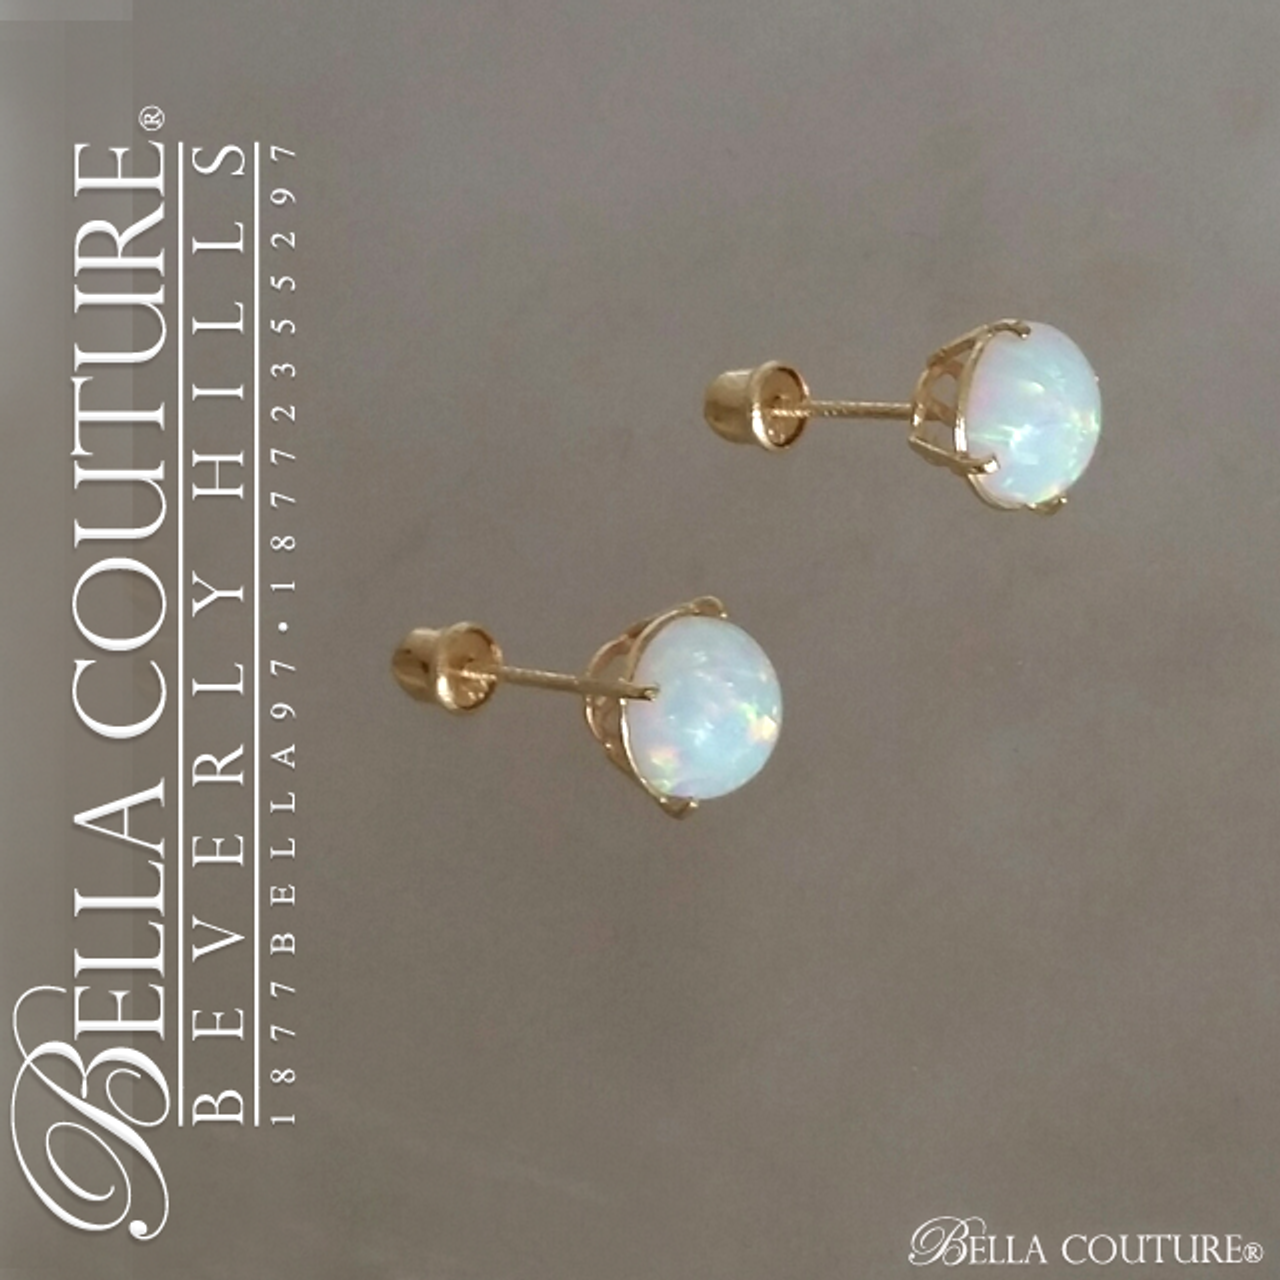 114a8d229 (VINTAGE) Rare Gorgeous Genuine 6.5MM Opal Gemstone 14K Yellow Gold  Solitaire Earrings - BELLA COUTURE ®